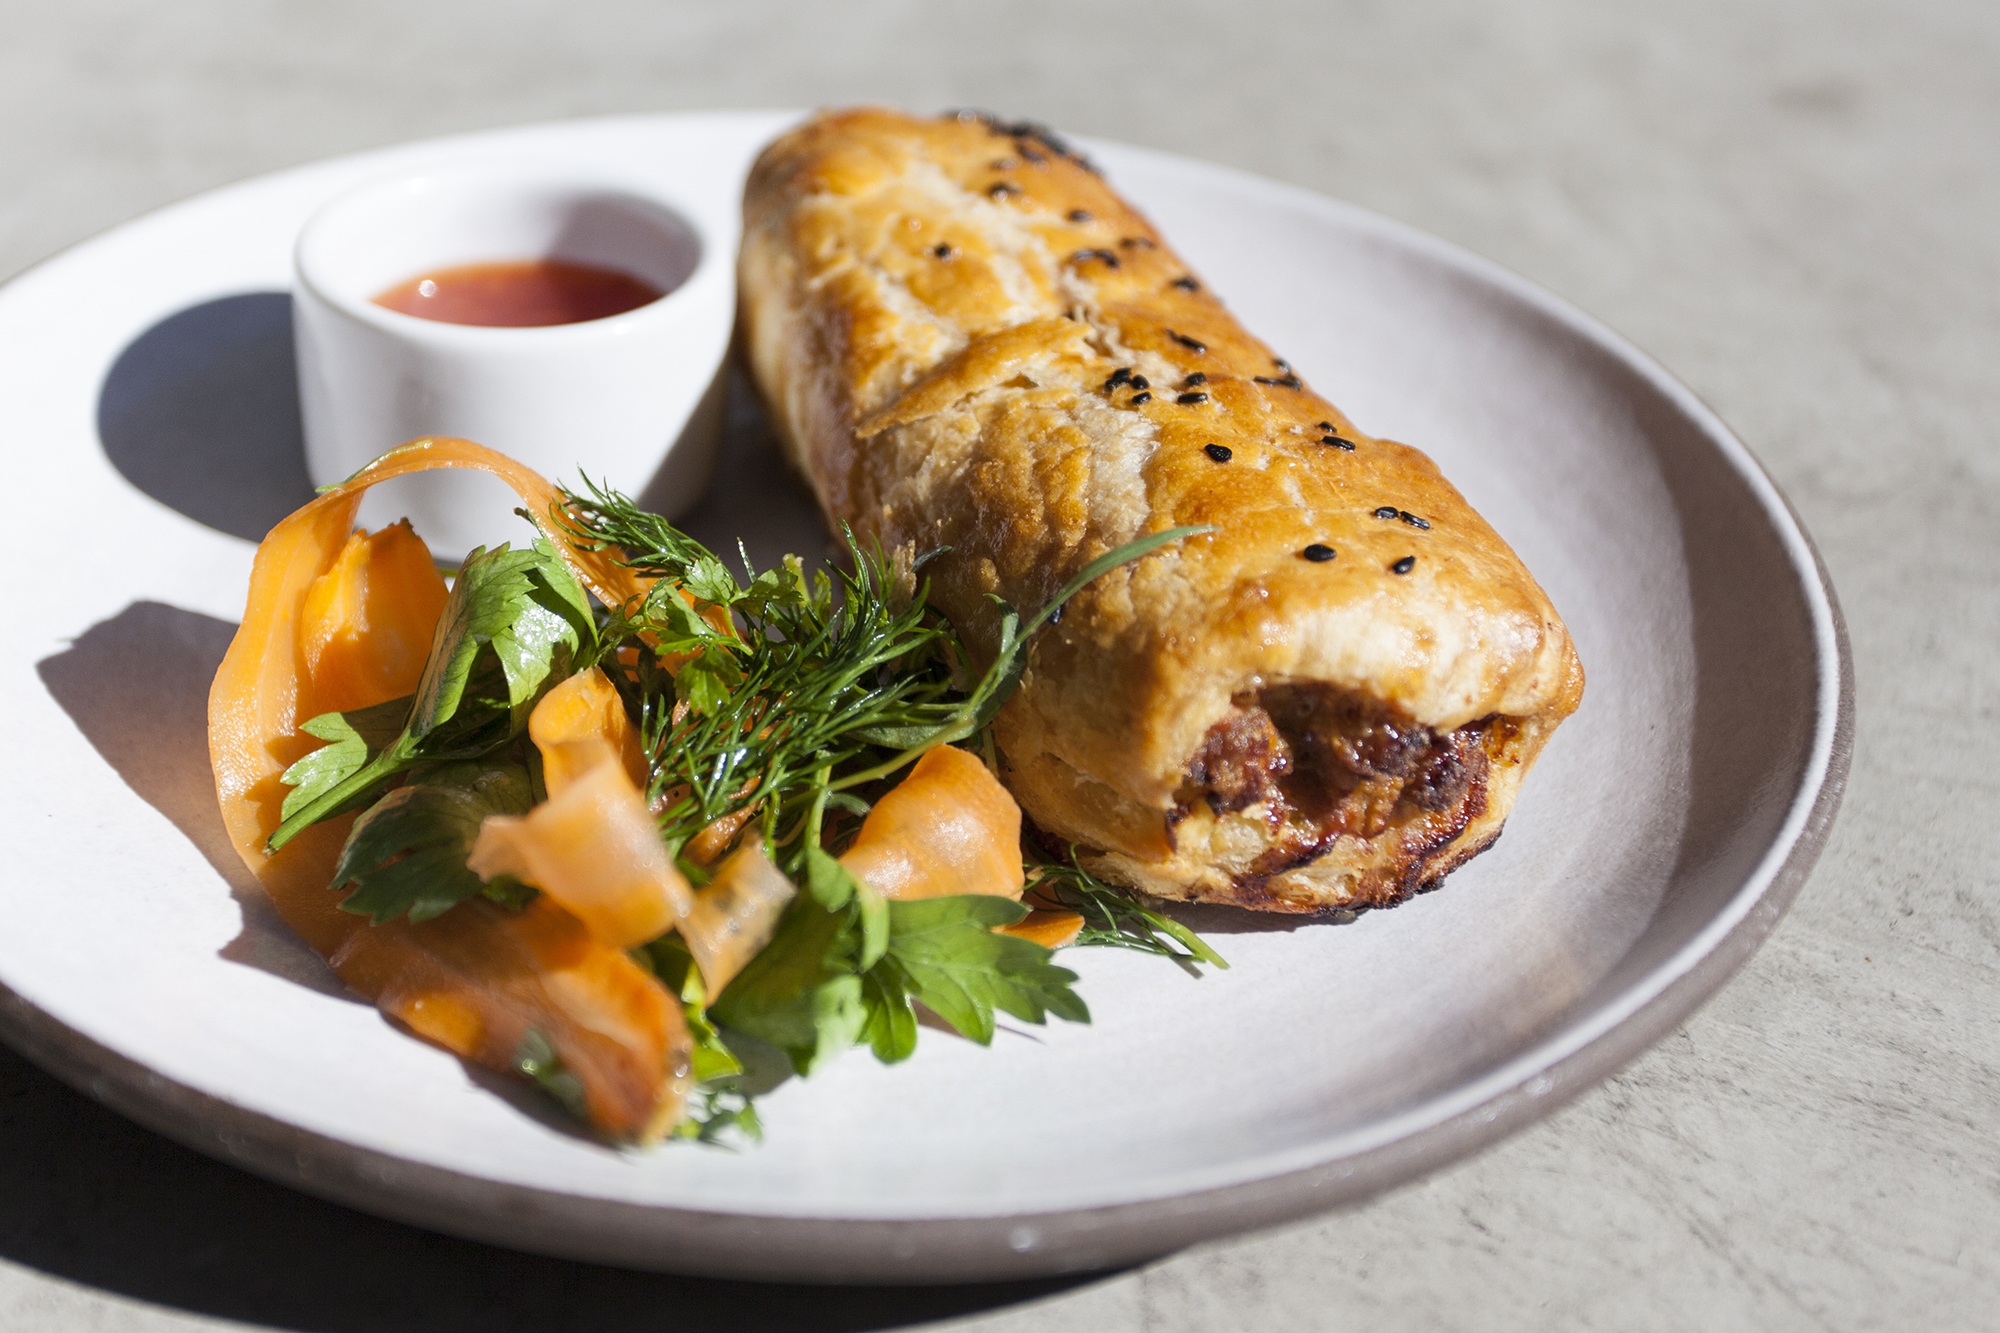 Lumpia sausage roll at Paramount Coffee Project ROW DTLA by Ria Barbosa